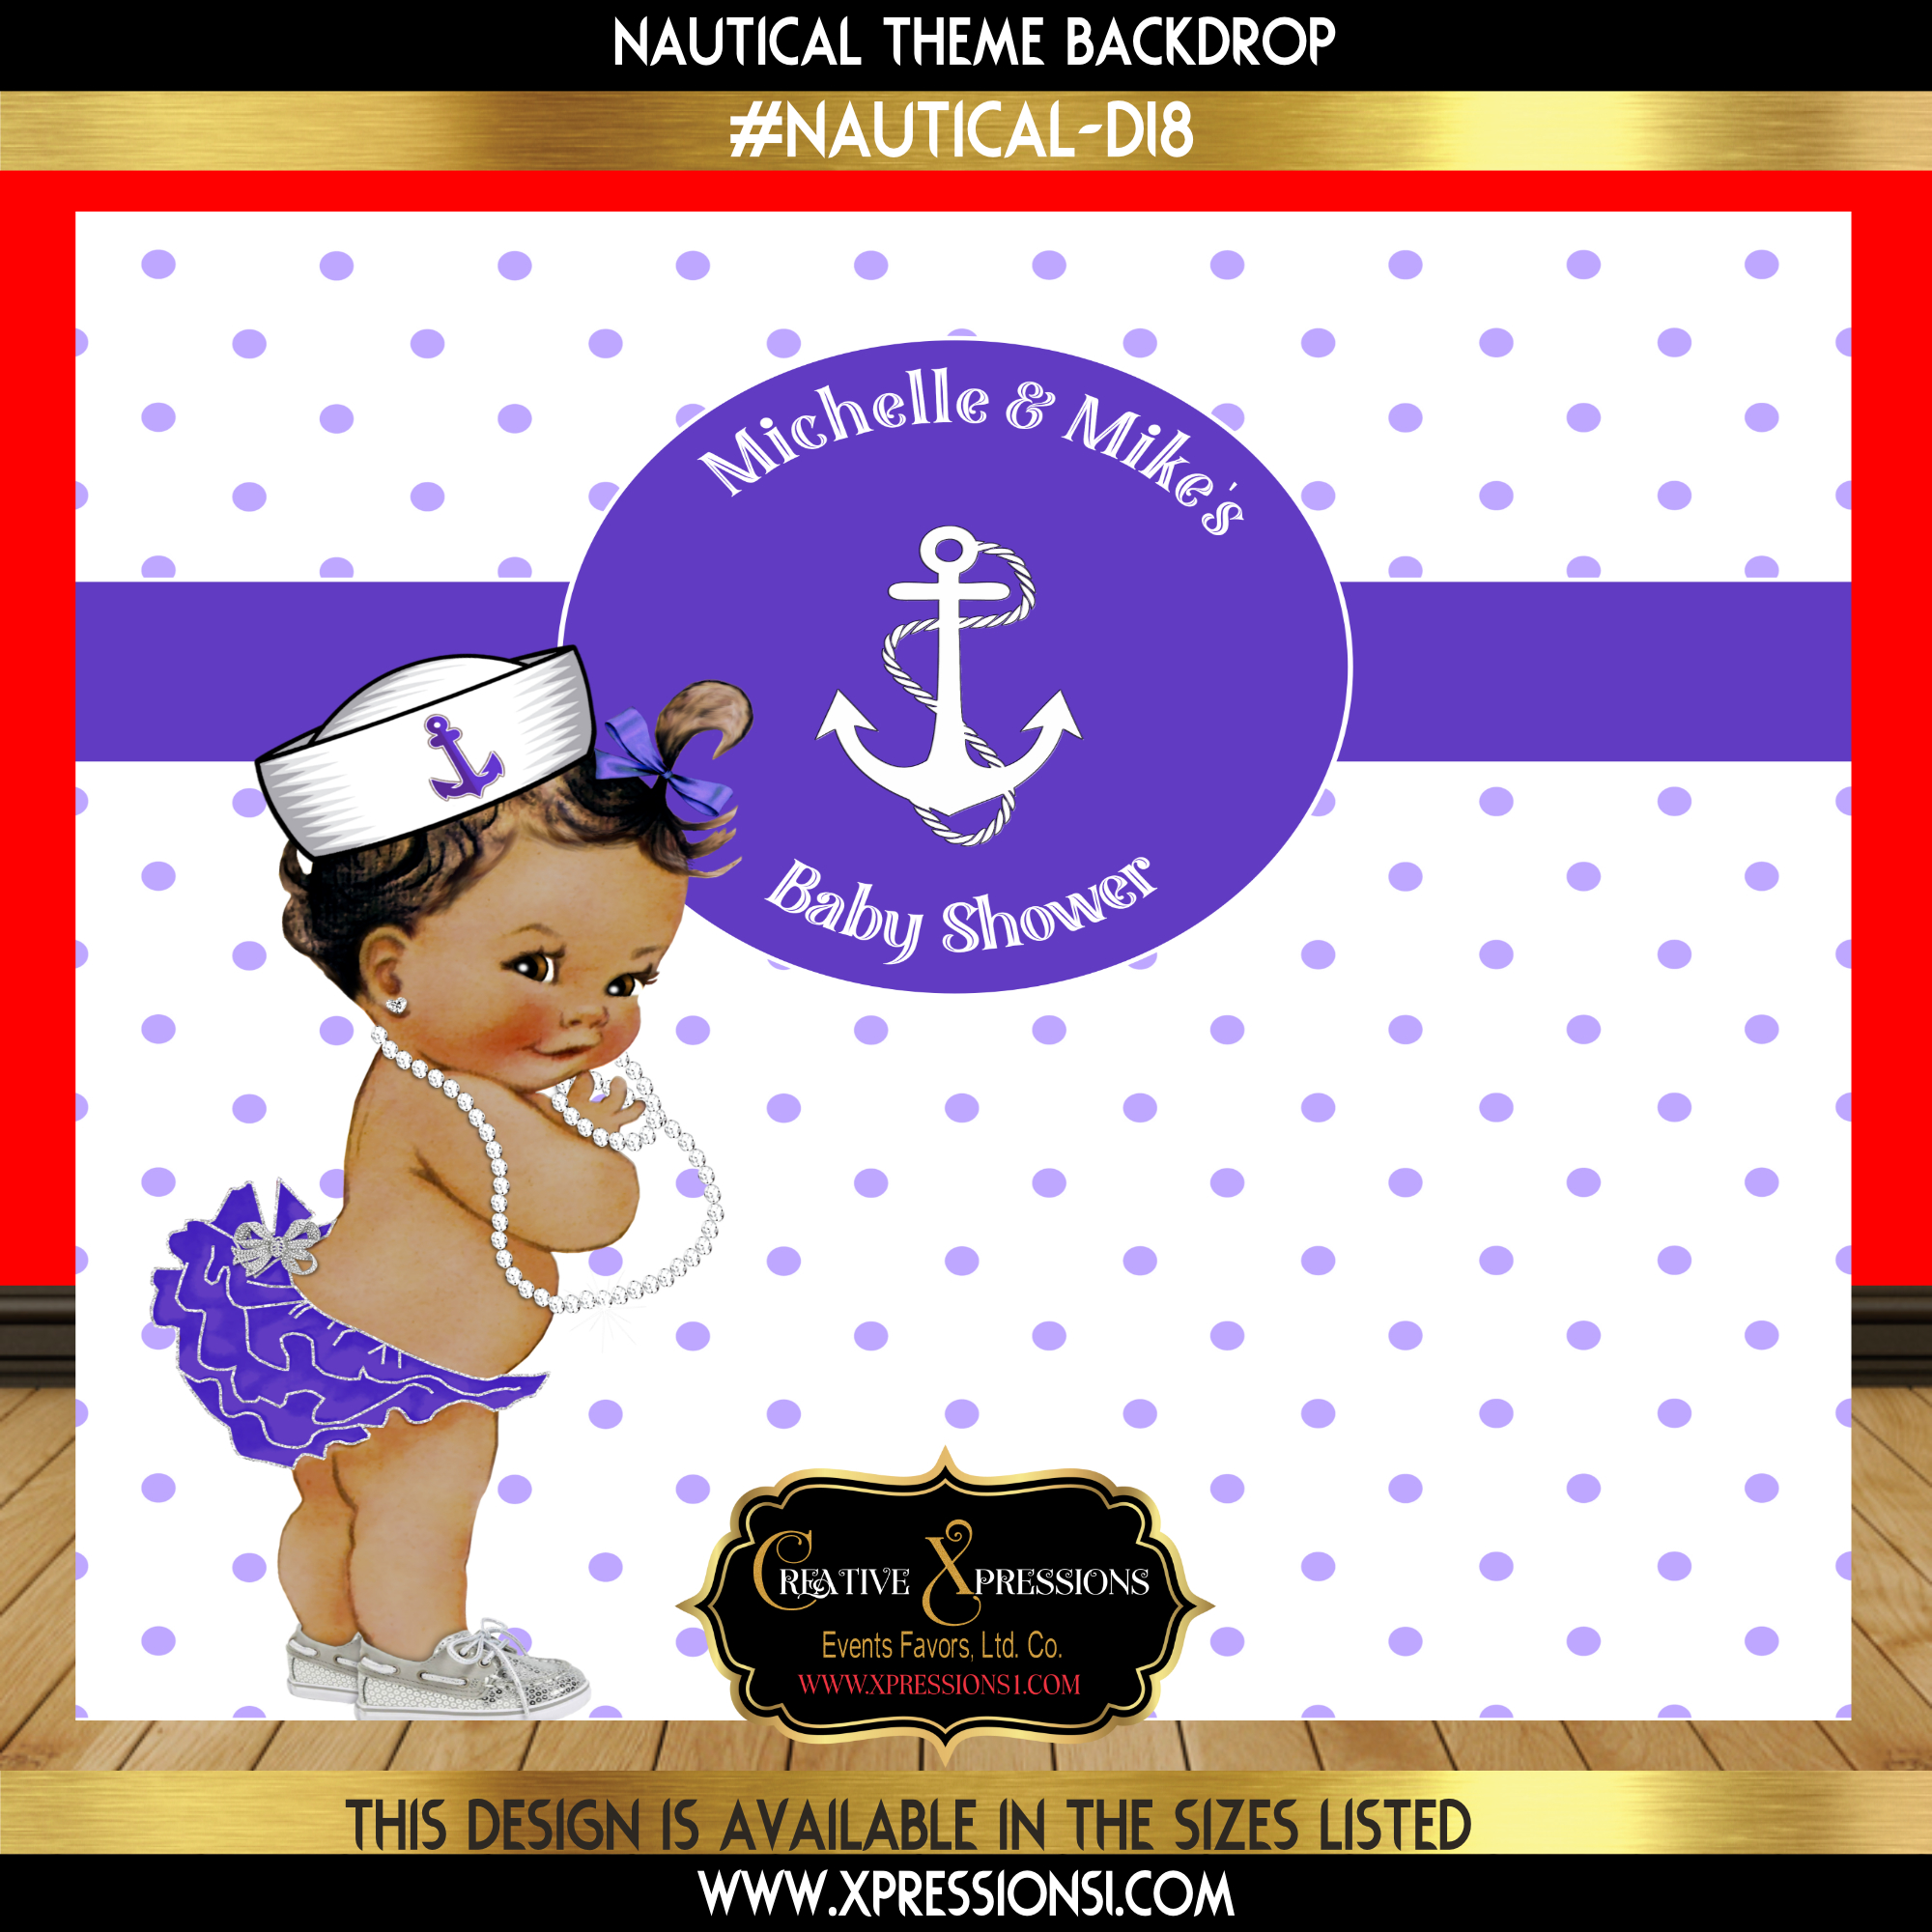 Sailor Girl in Purple Baby Shower Backdrop